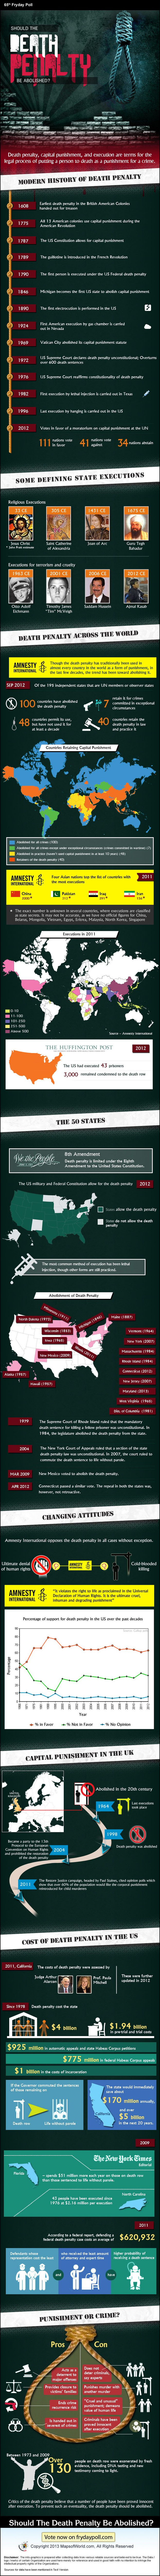 Find In-depth Review And Infographic About Death Penalty, Corporal Punishment, Capital Punishment, Executions, State Executions, Abolitionist Nations, States Retaining Capital Punishment, Capital Punishment in the US, Facts & Stats